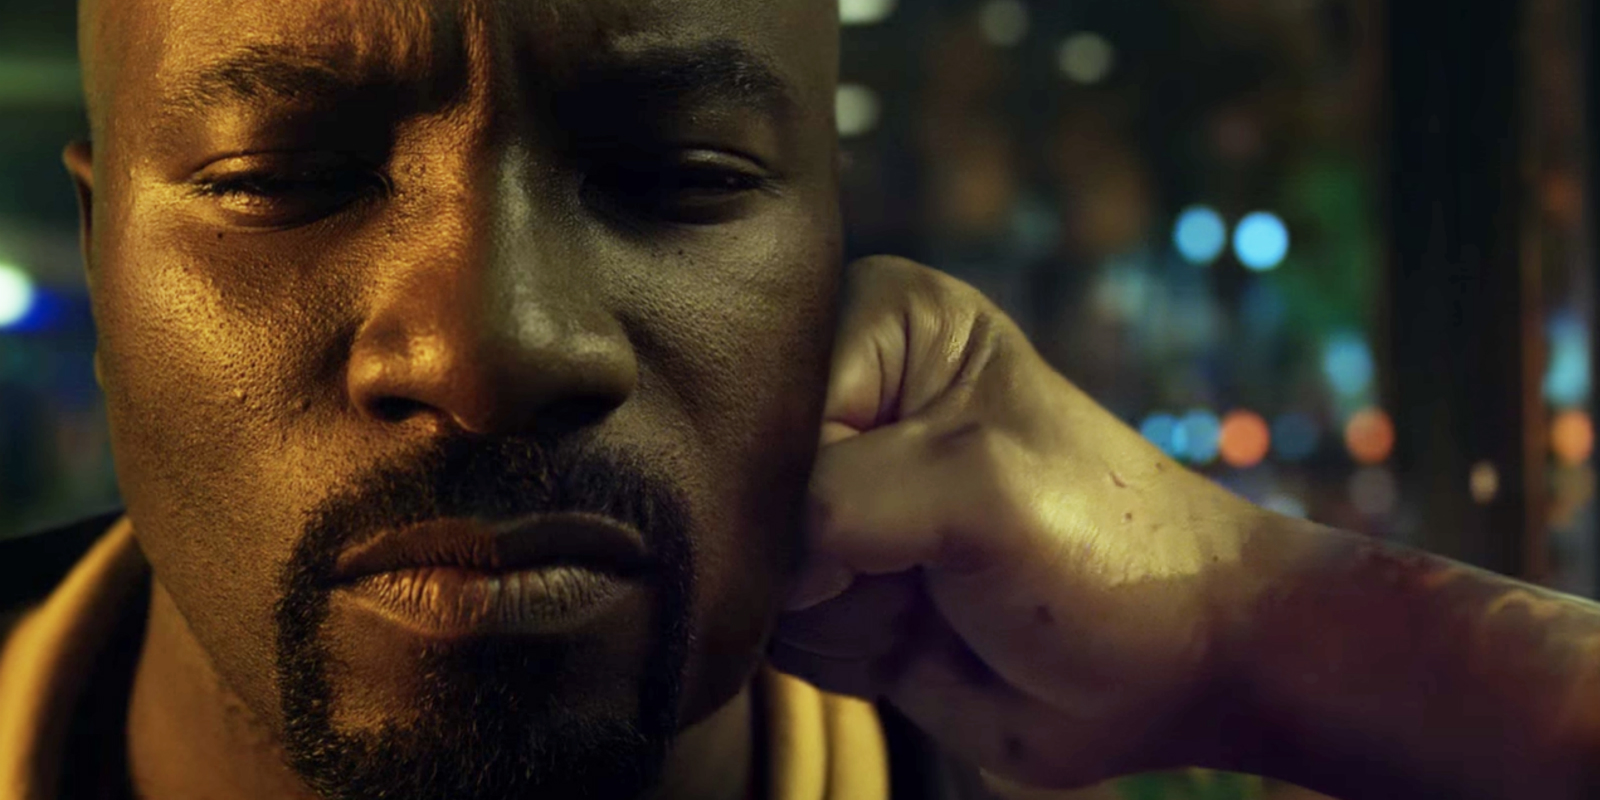 Luke Cage Might Not Be Great But it Sure is Entertaining